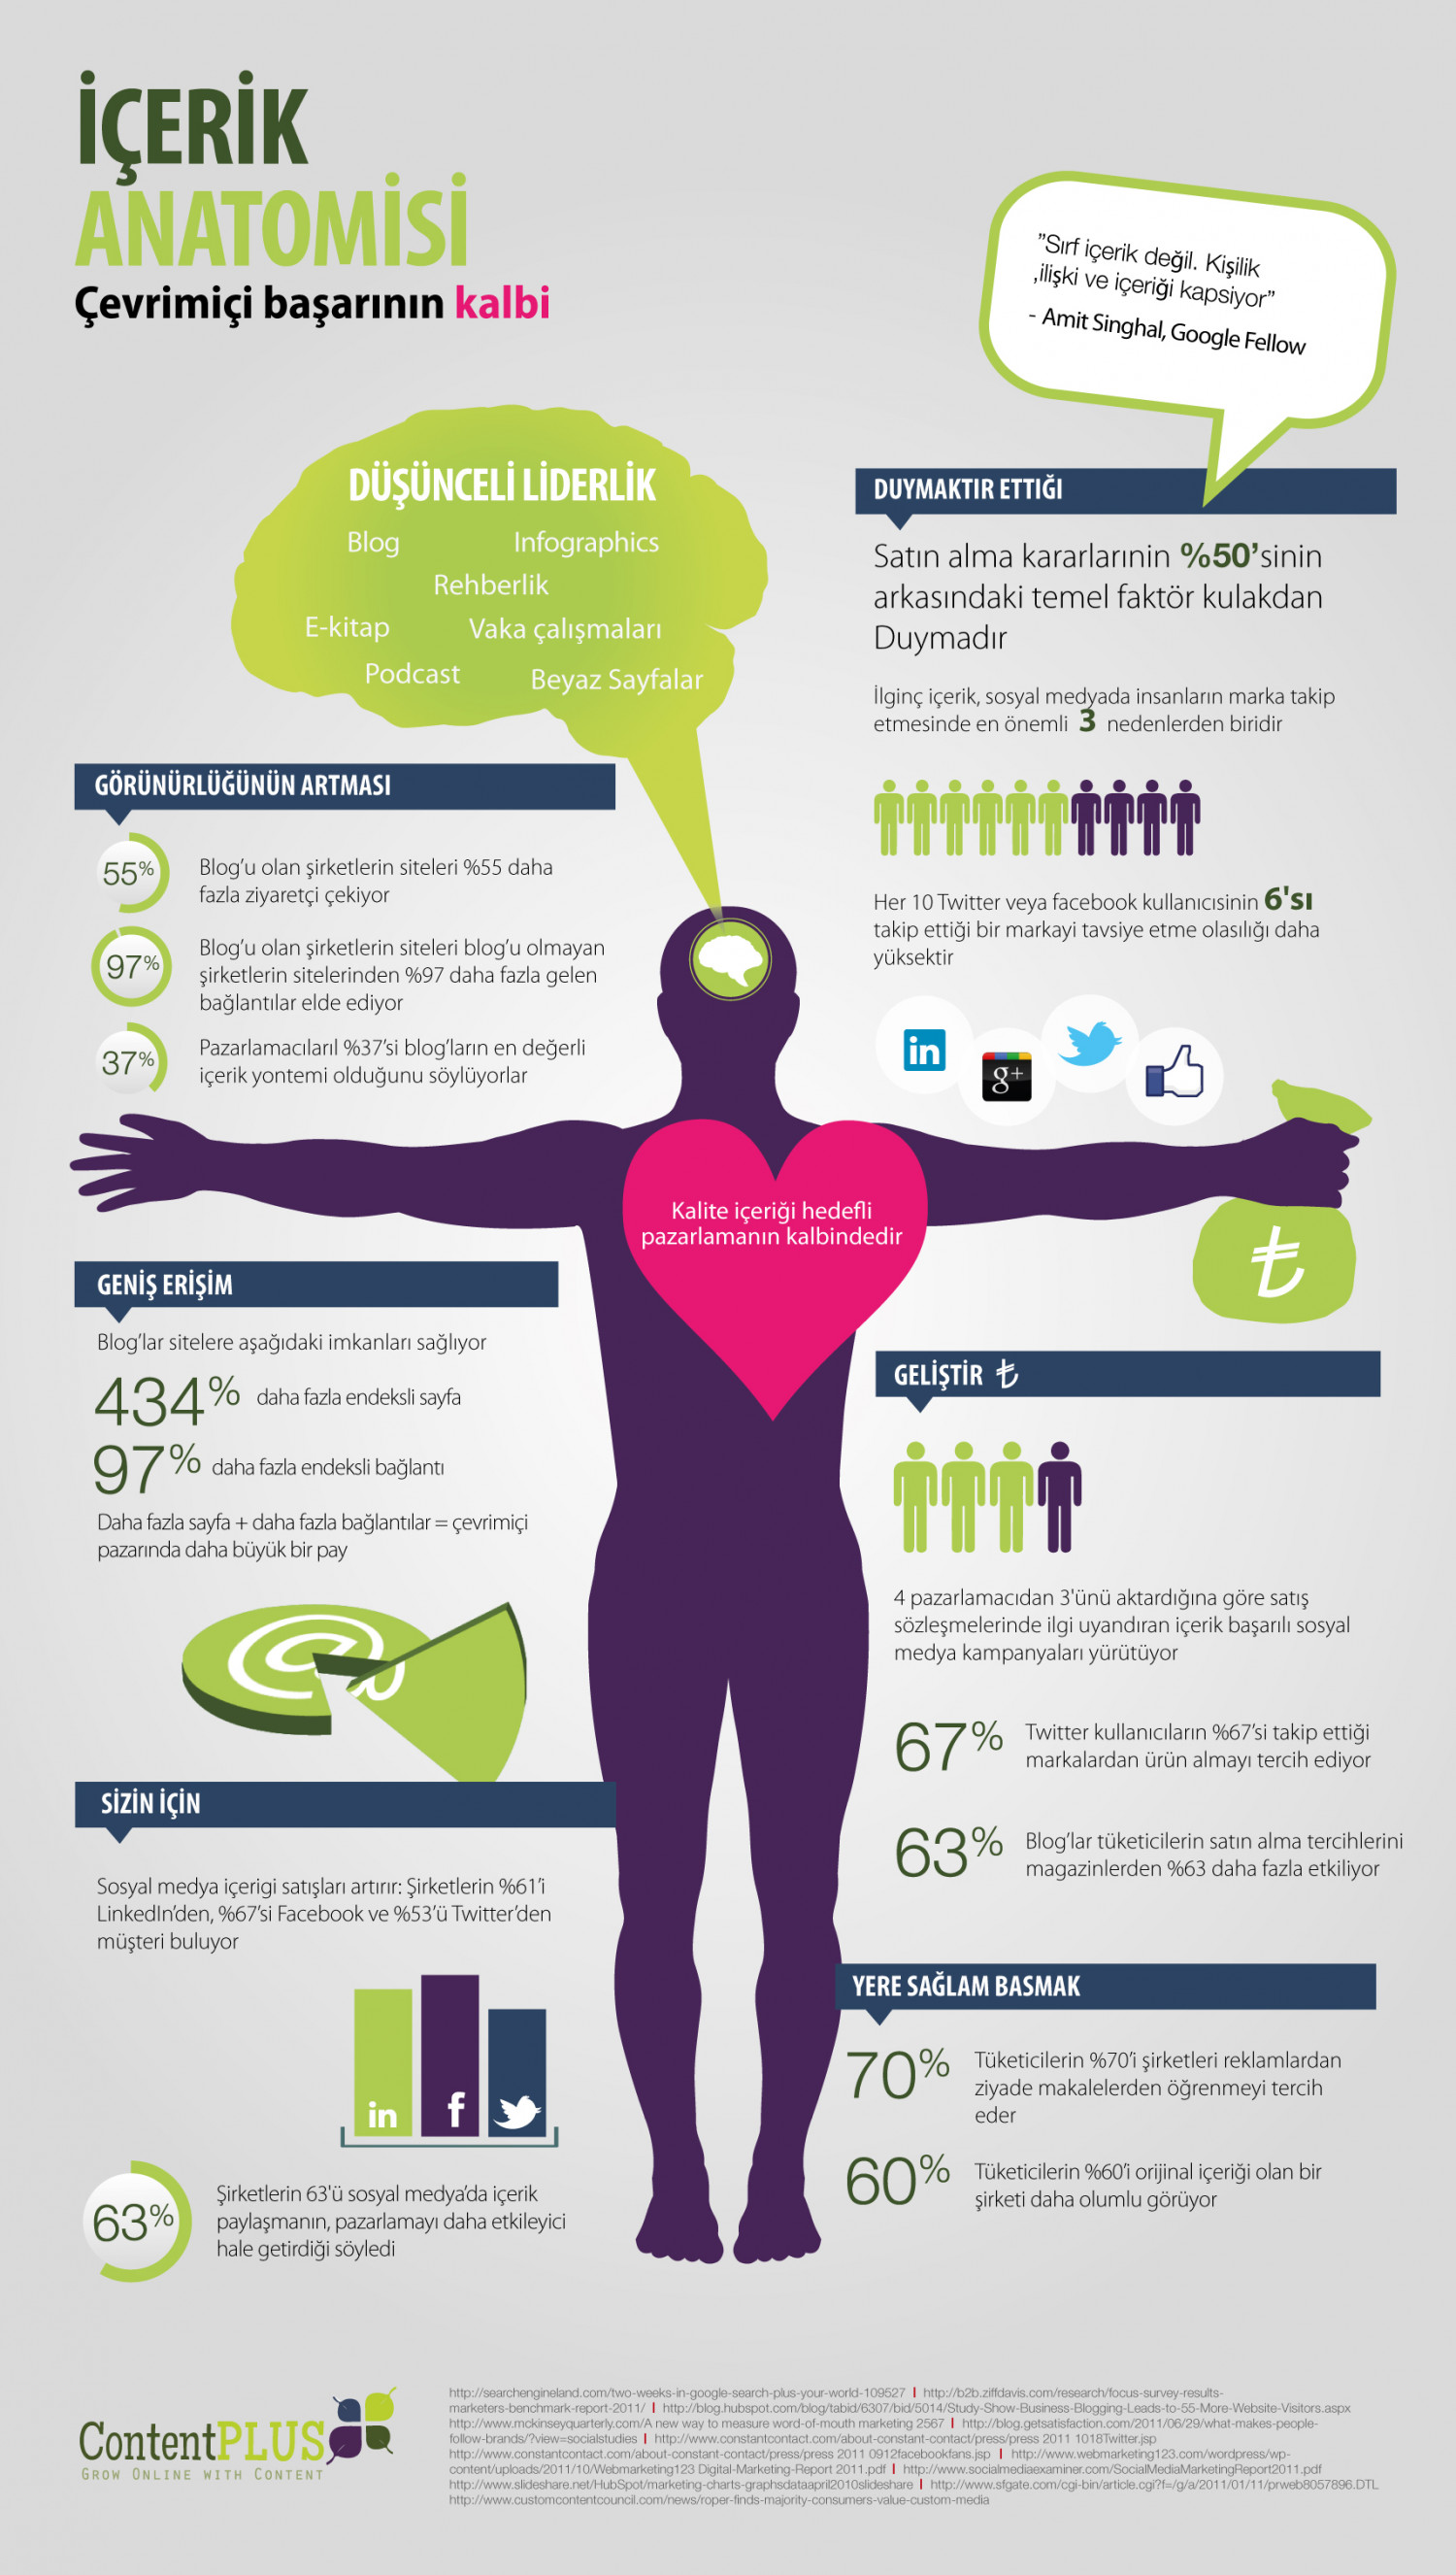 Turkish Anatomy of Content Marketing Infographic Infographic